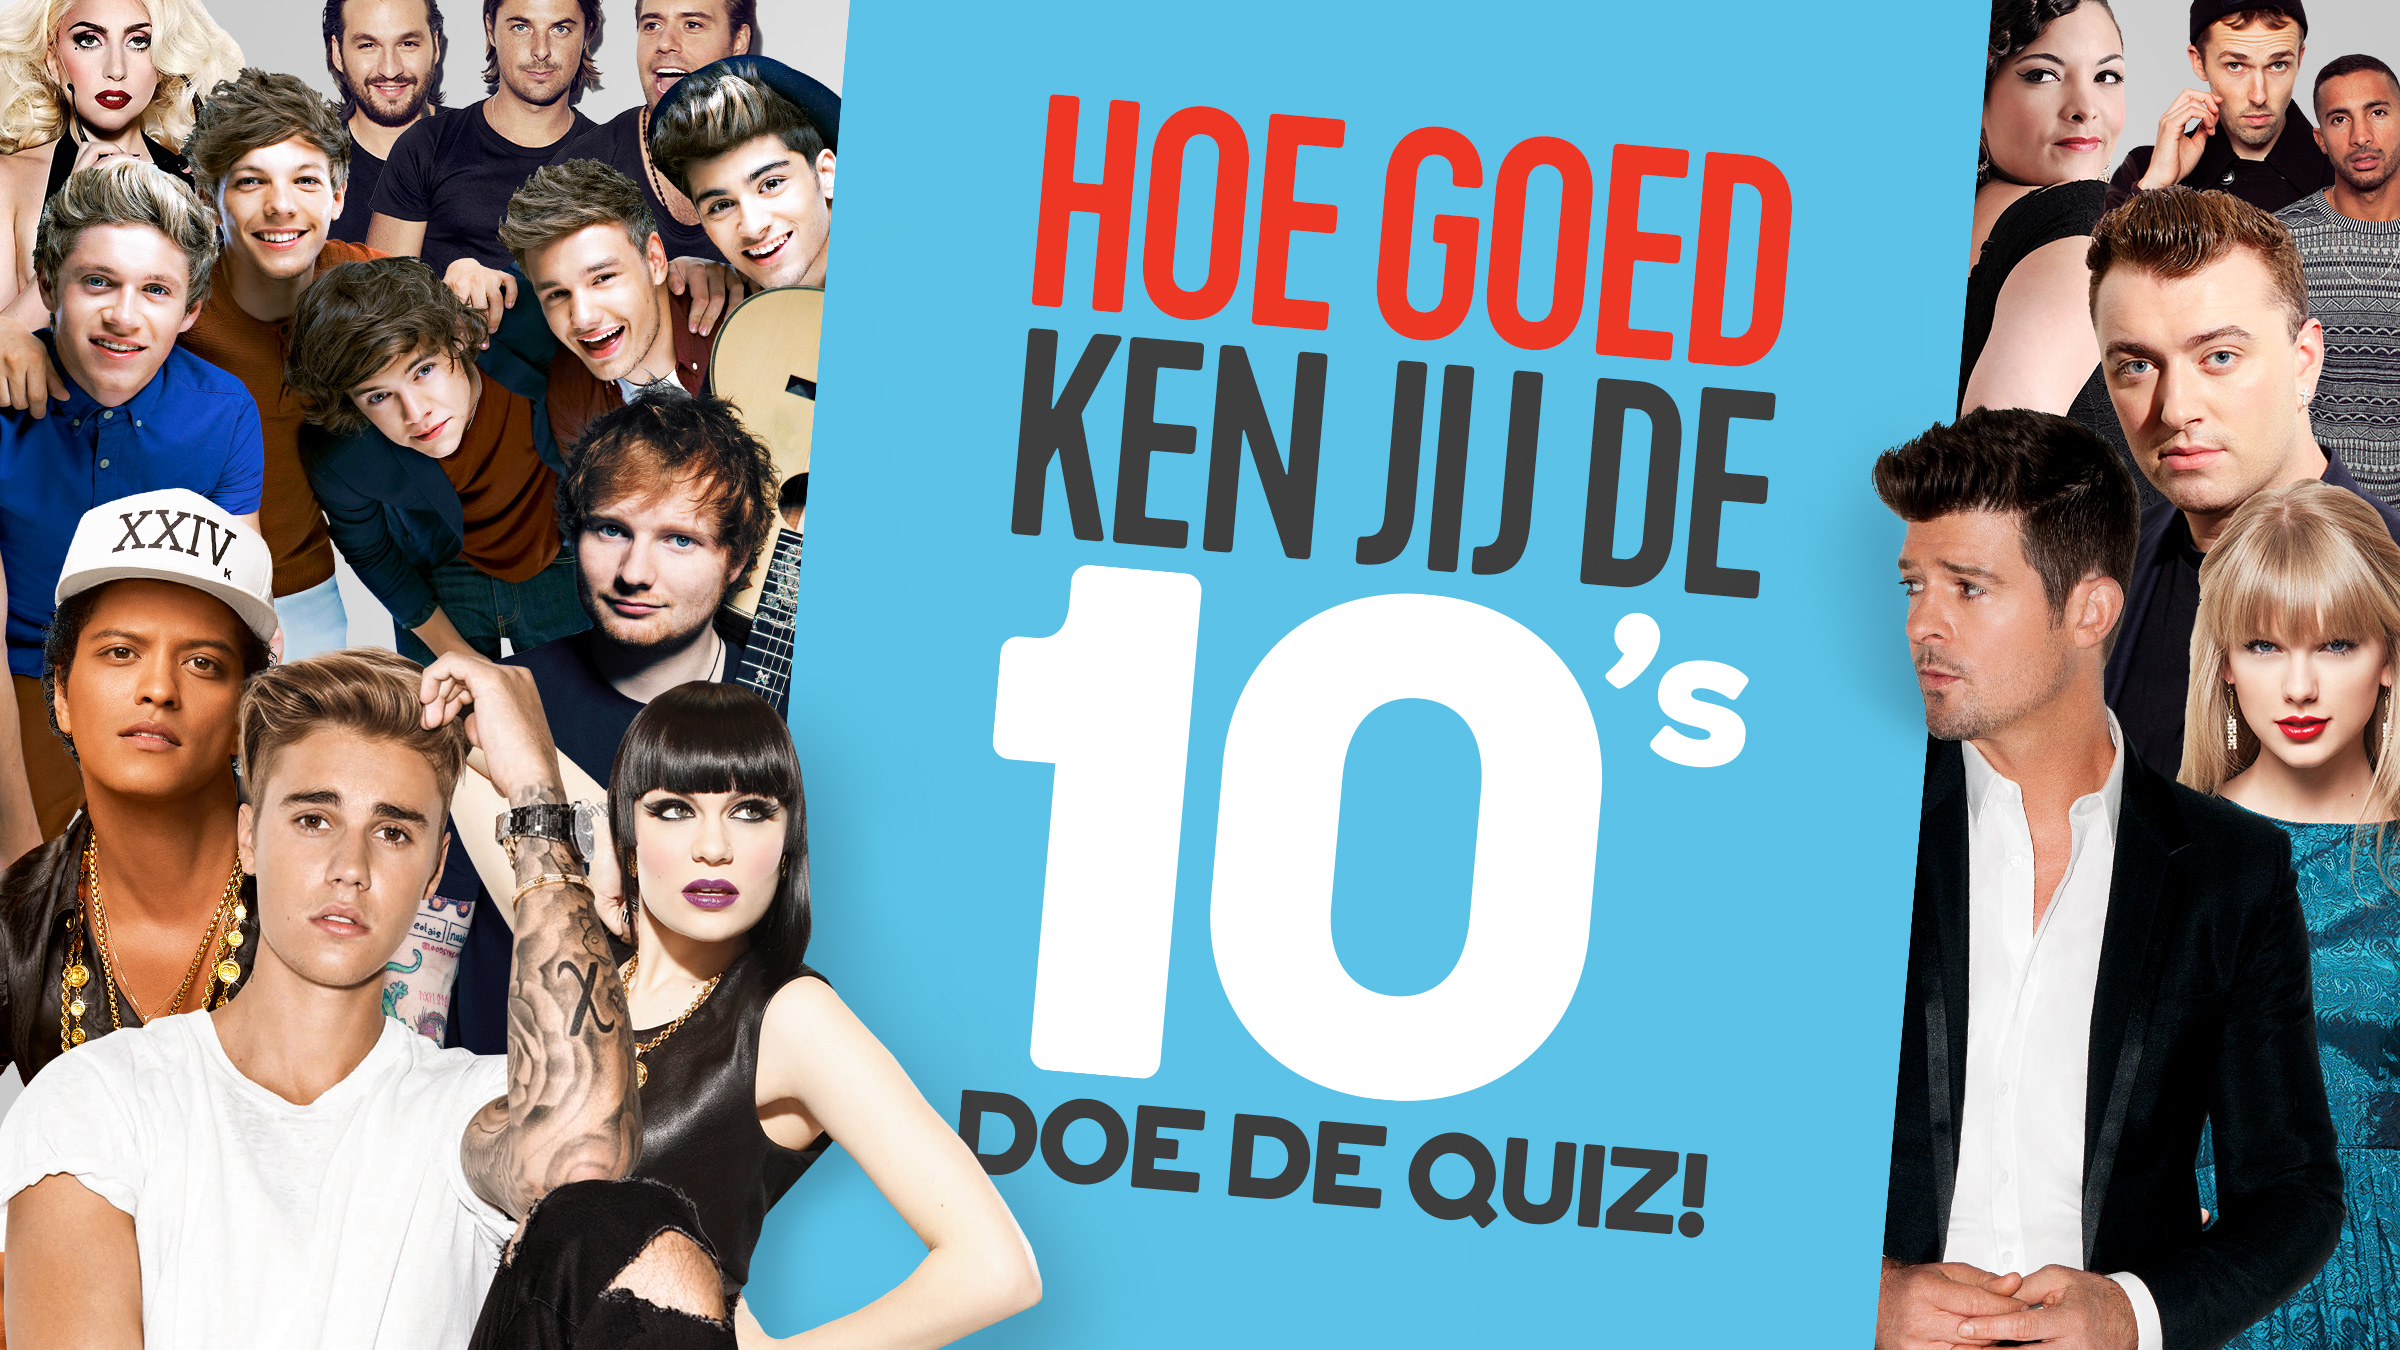 Qmusic teaser top500 10s quiz